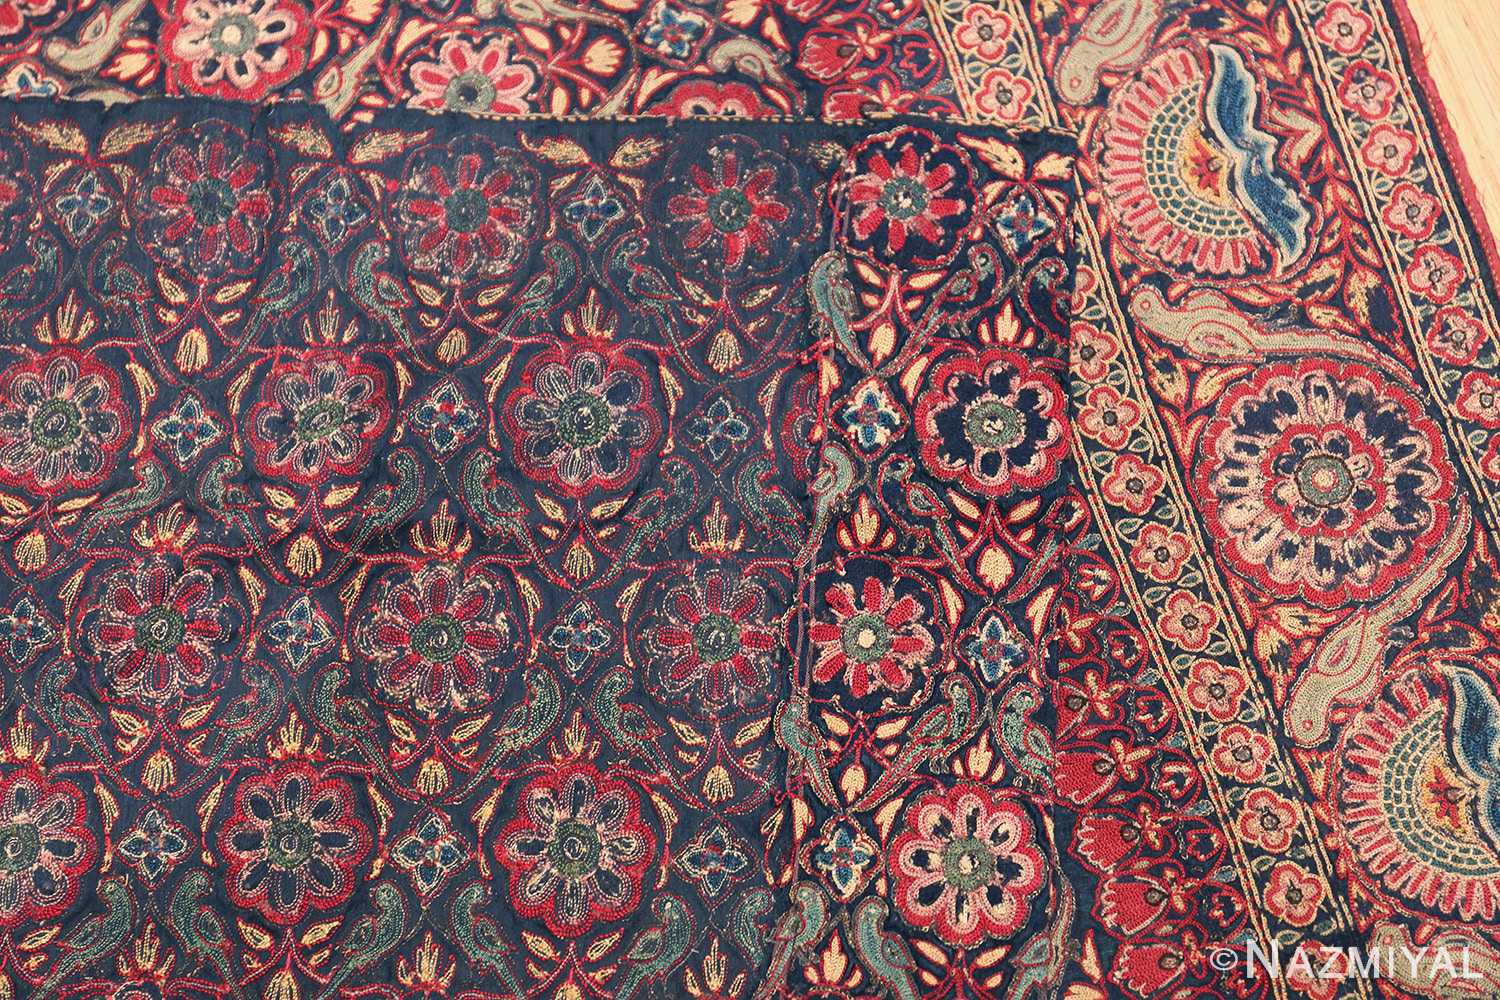 18th Century Indian Embroidery Textile 40364 Woven Knots Nazmiyal